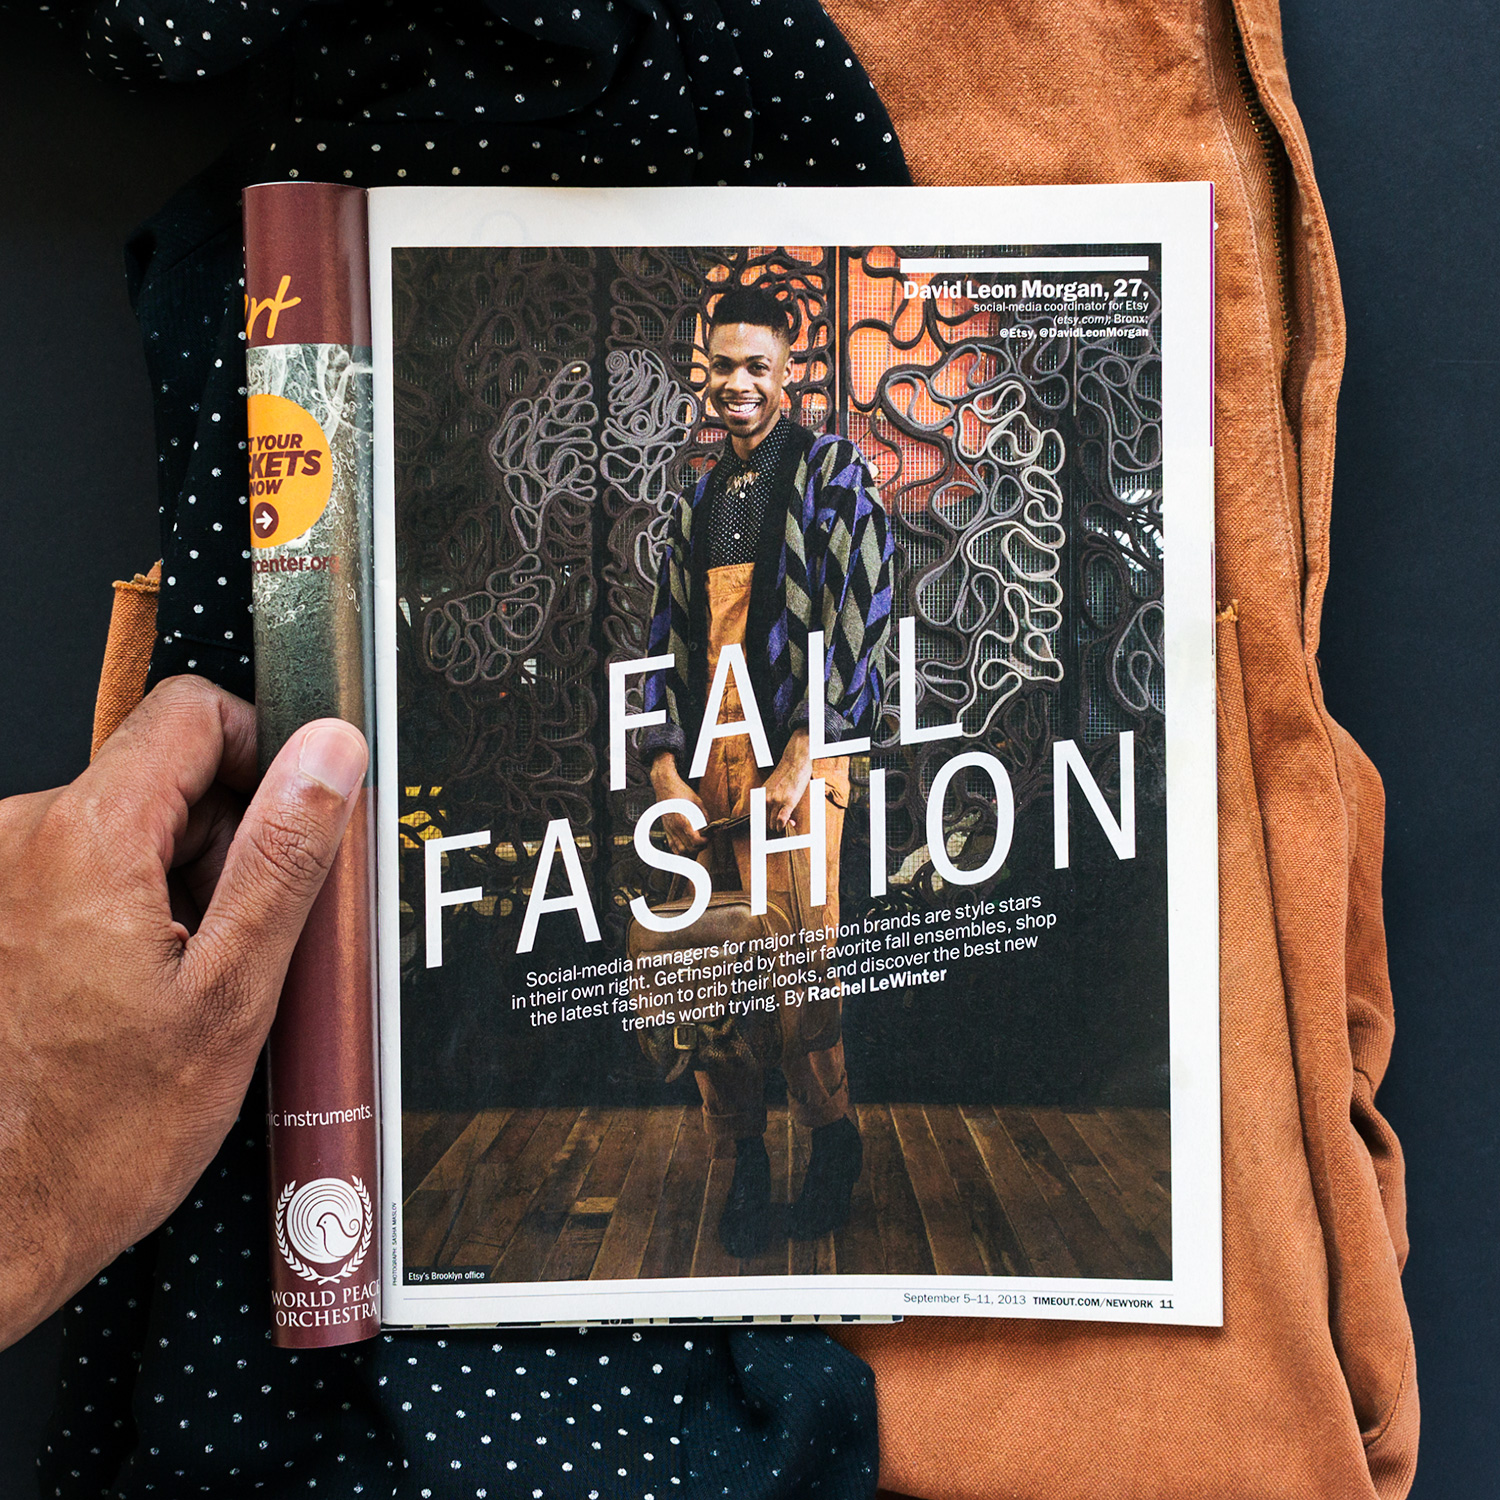 During my time as Etsy's Lead Social Media Specialist, I was featured in Time Out New York's 2013 Fall Fashion issue, which highlighted the style of social media managers for major brands.